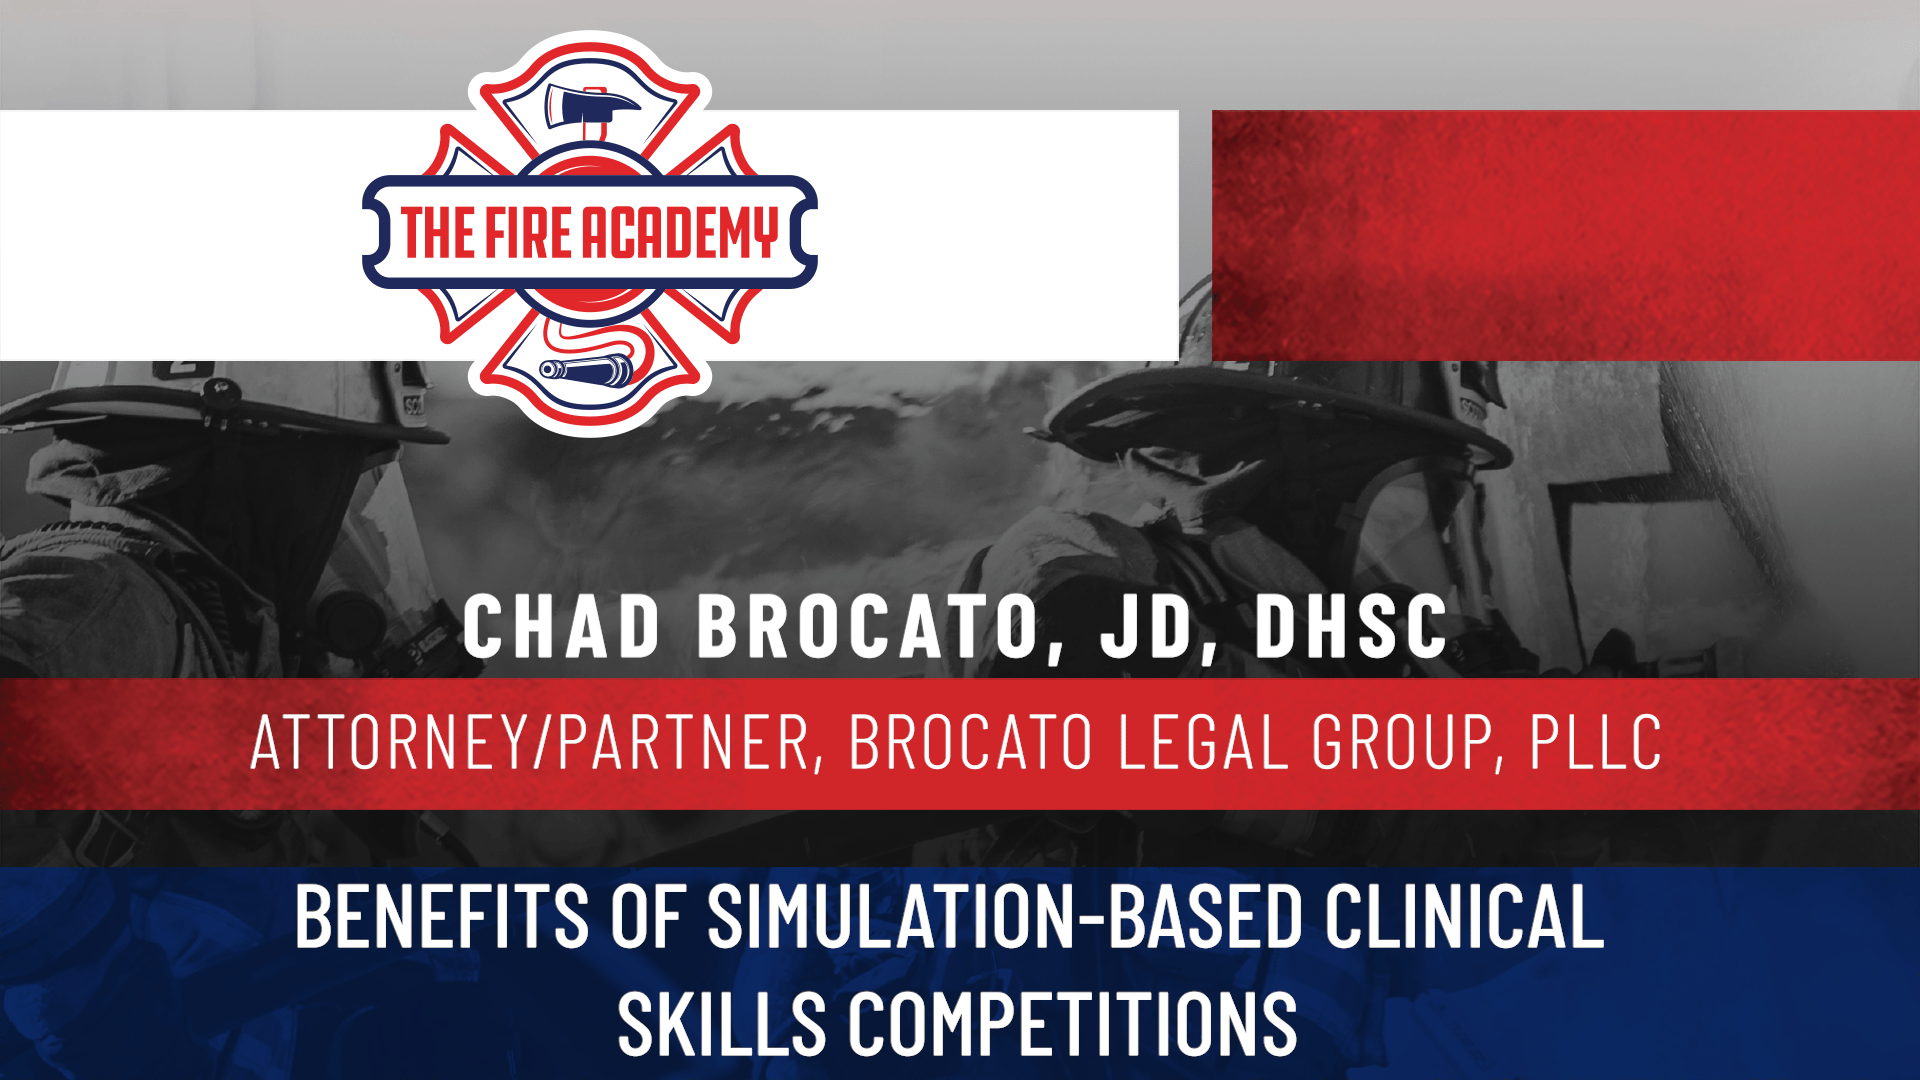 Benefits of Simulation-Based Clinical Skills Competitions